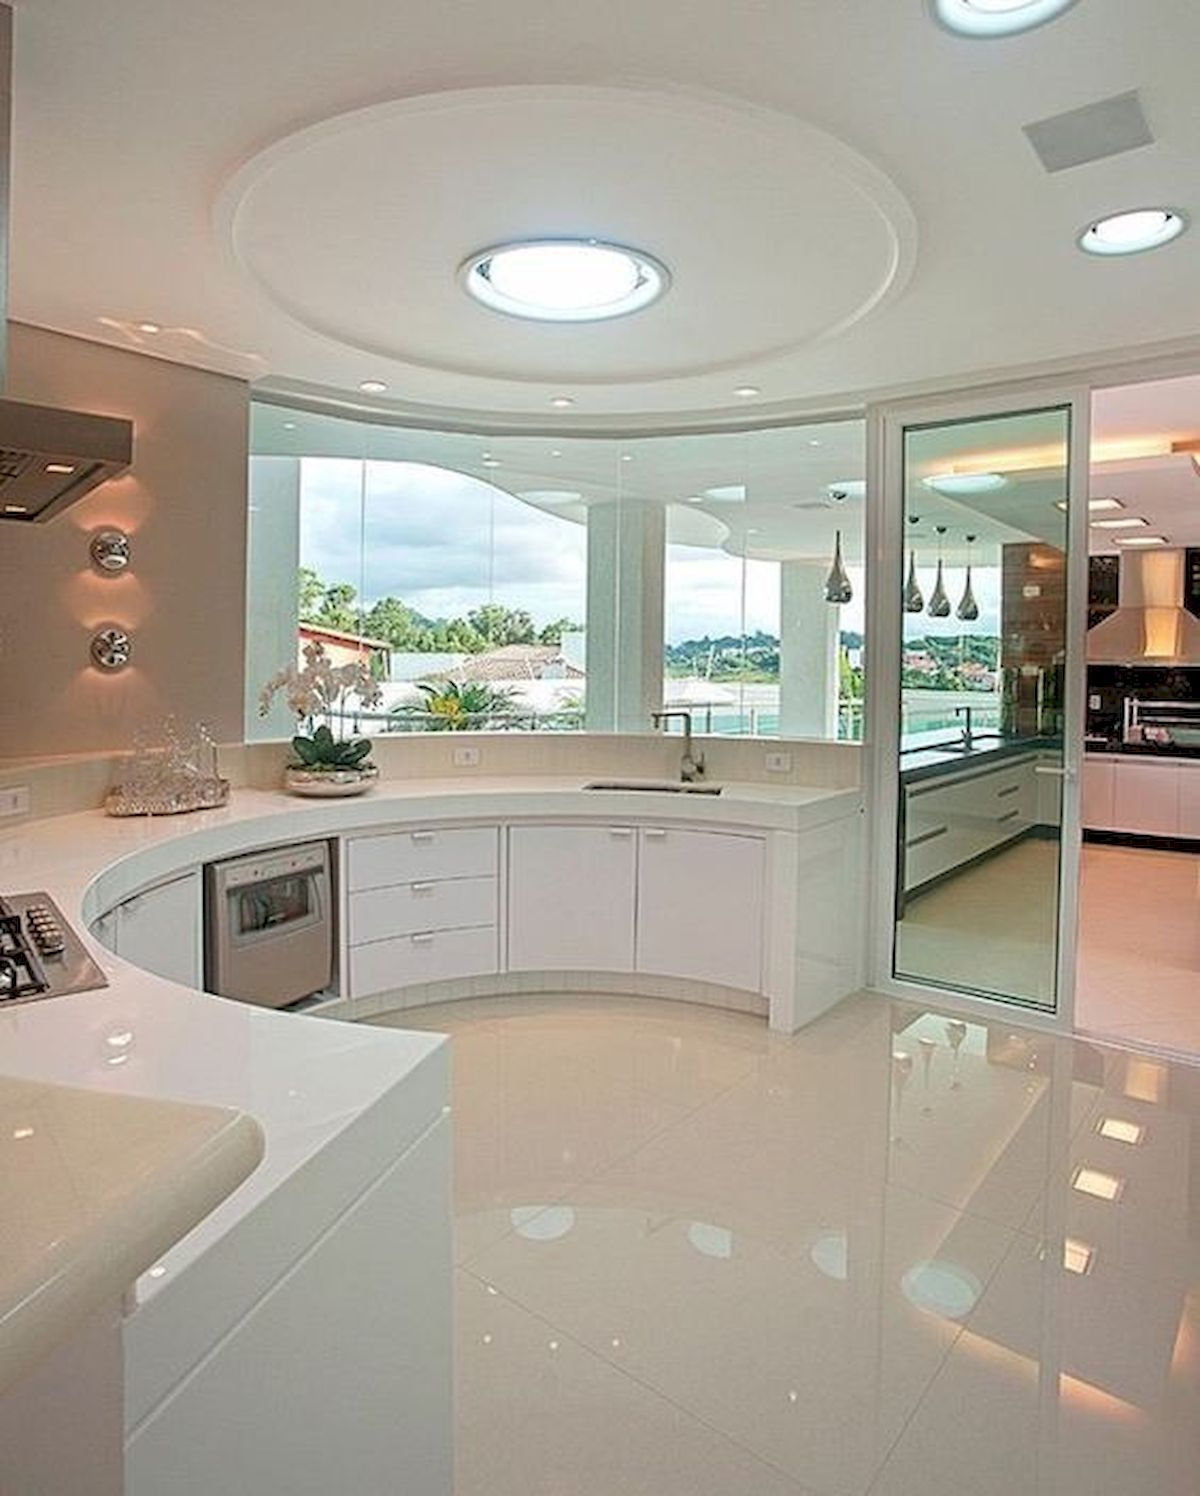 40 Best Tile Flooring Designs Ideas For Modern Kitchen 31